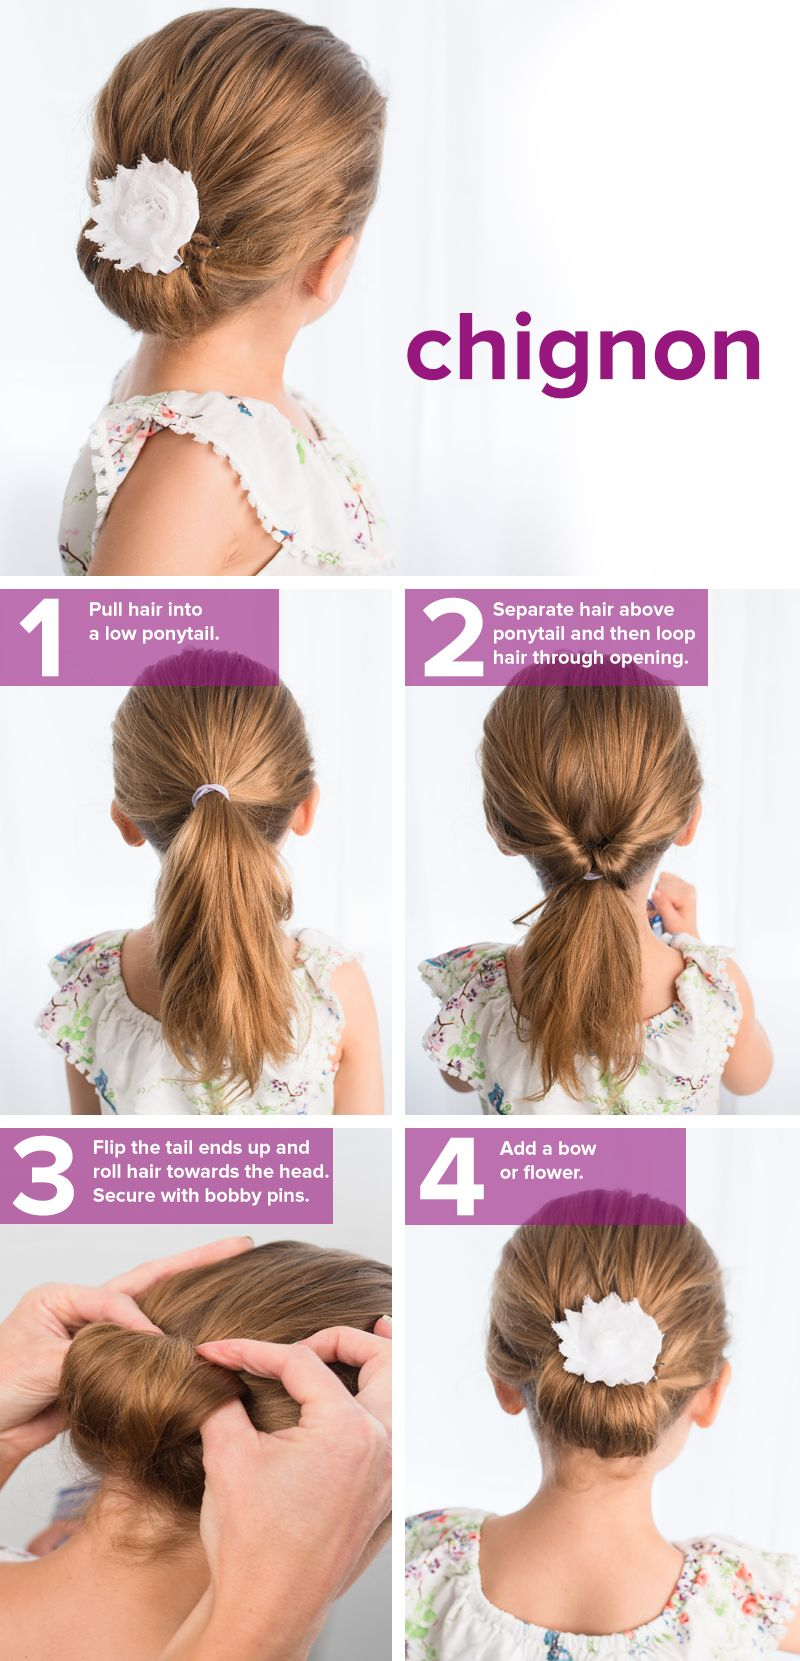 Easy And Cute Hairstyles Unique 5 Fast Easy Cute Hairstyles For Girls  Pinterest  Chignon Hair